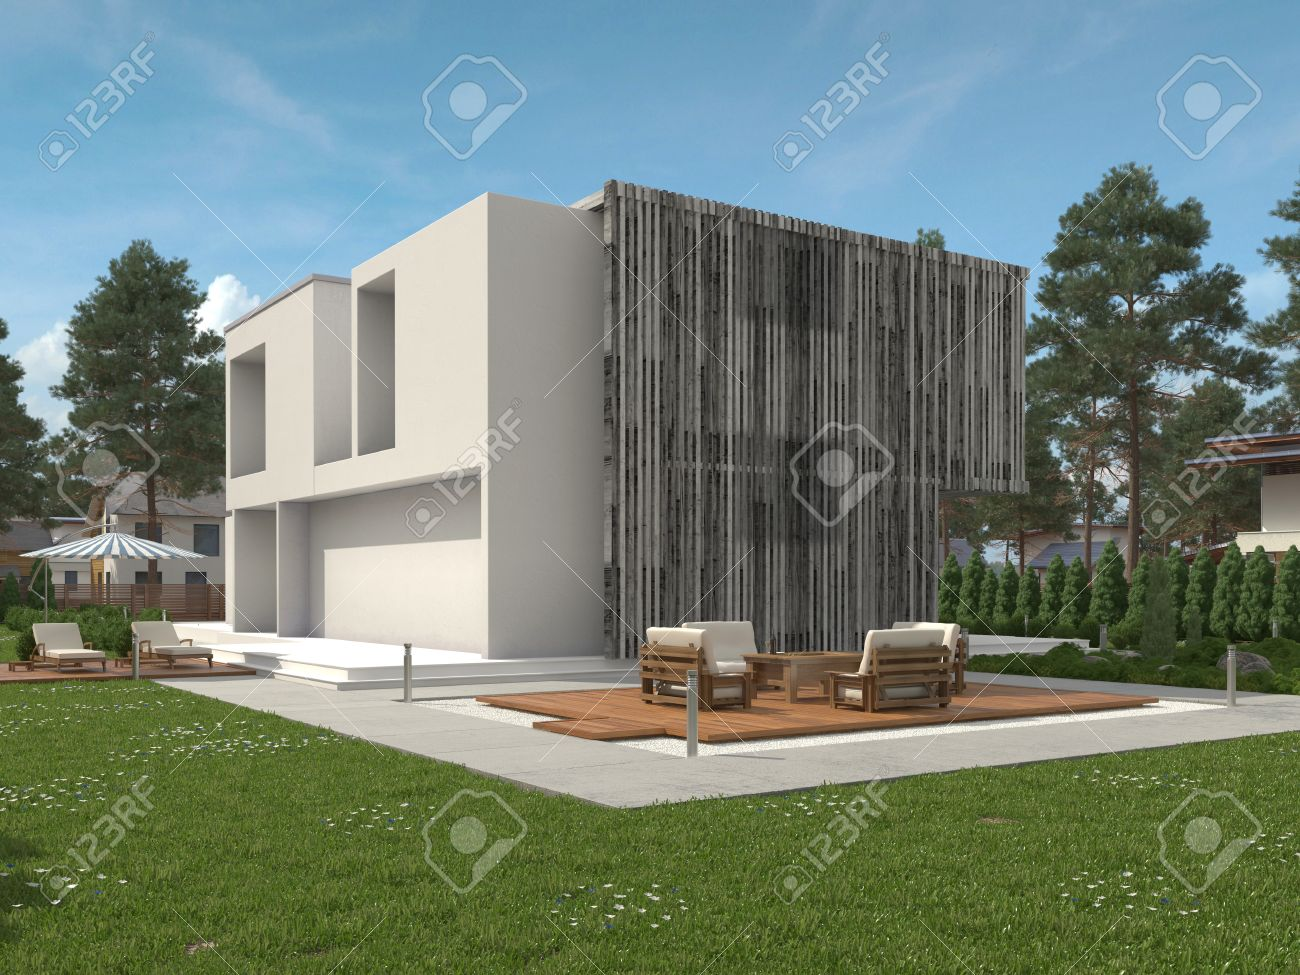 Modern exterior windows - Exterior View Of A Modern Two Storey House With Large View Windows And A Green Landscaped